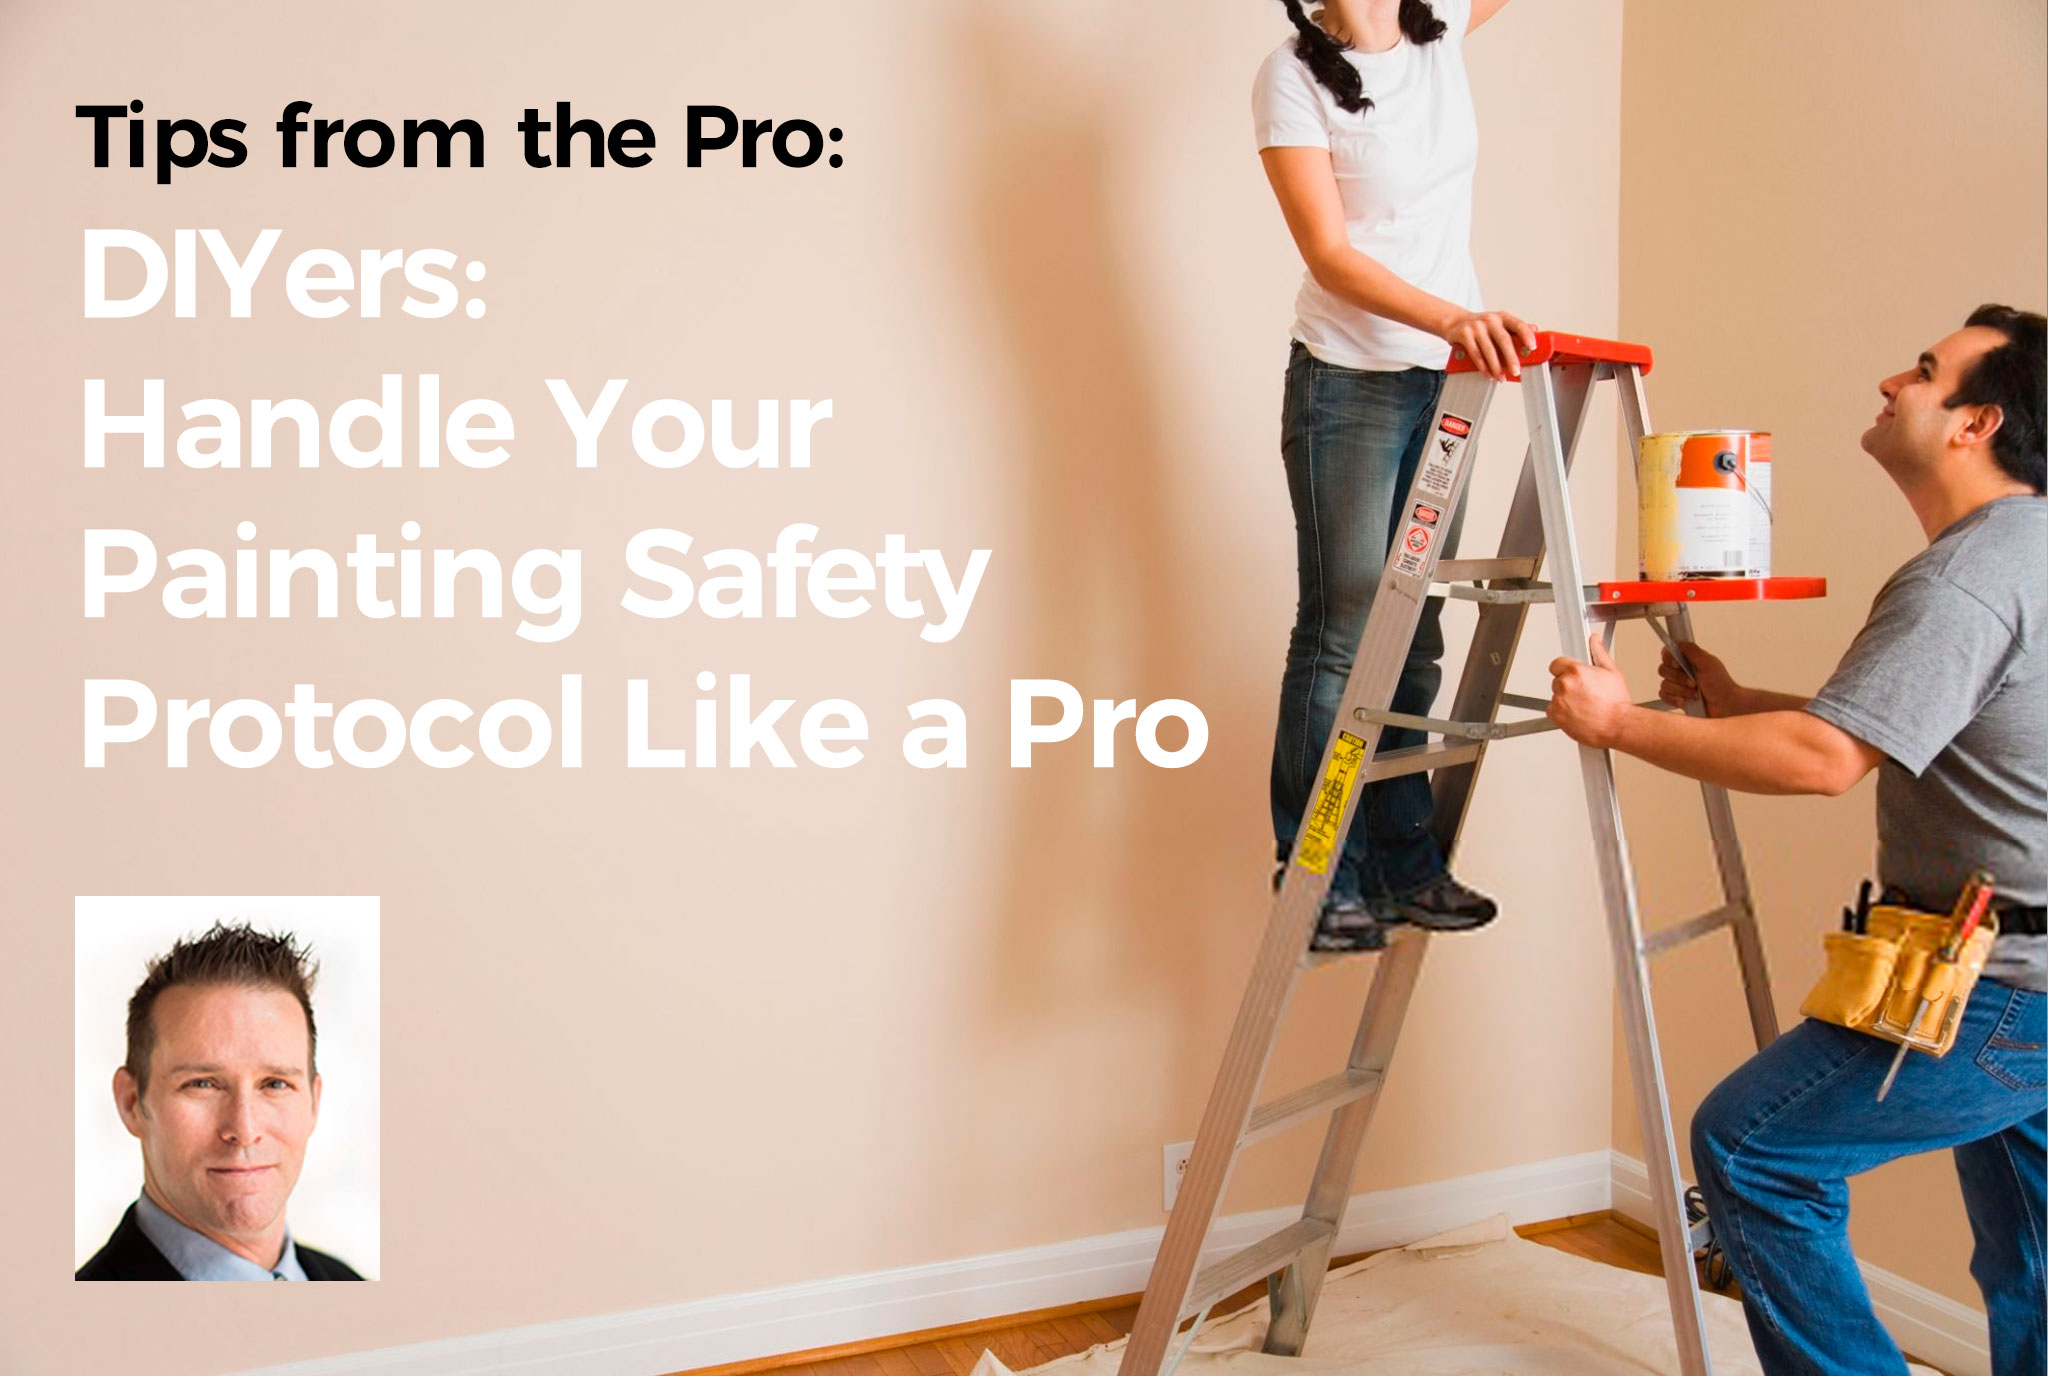 DIYers – Handle Your Painting Safety Protocol Like a Pro